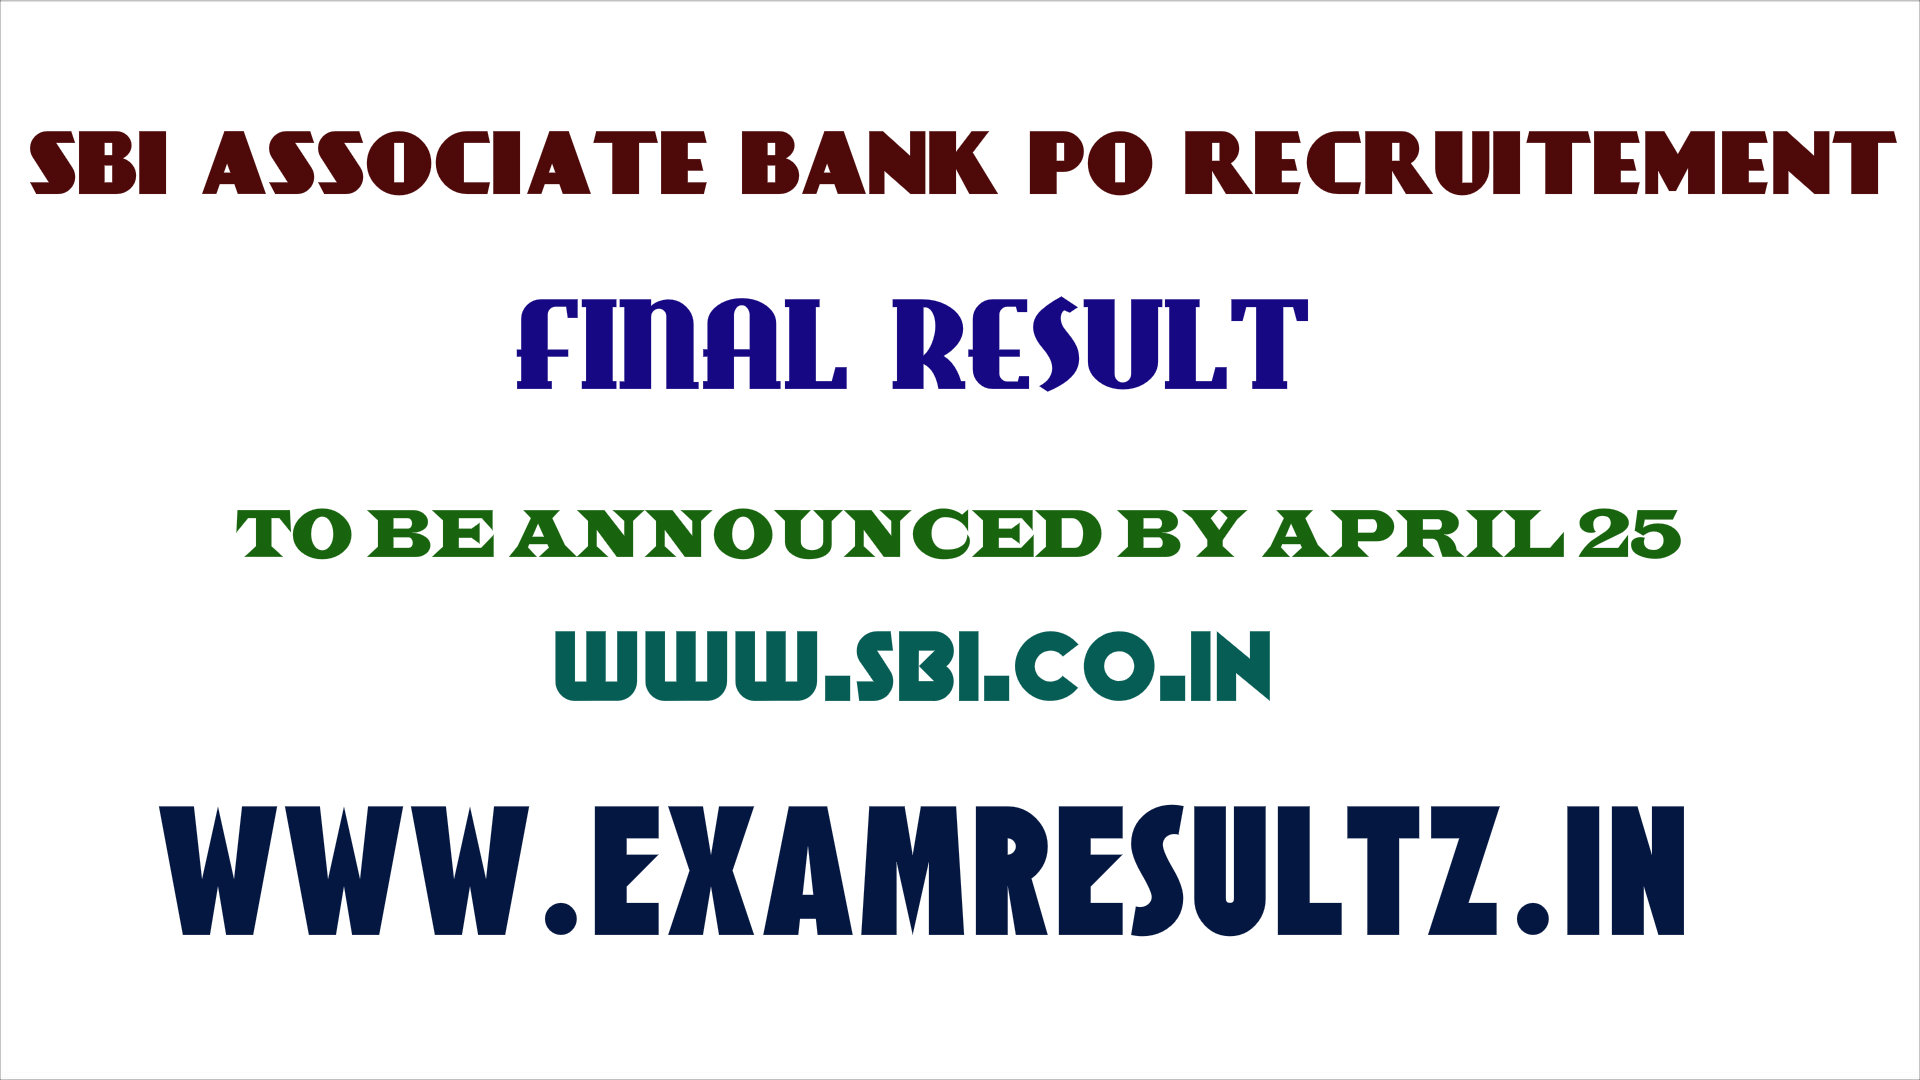 sbi associate bank po recruitment final result check online www.sbi.co.in